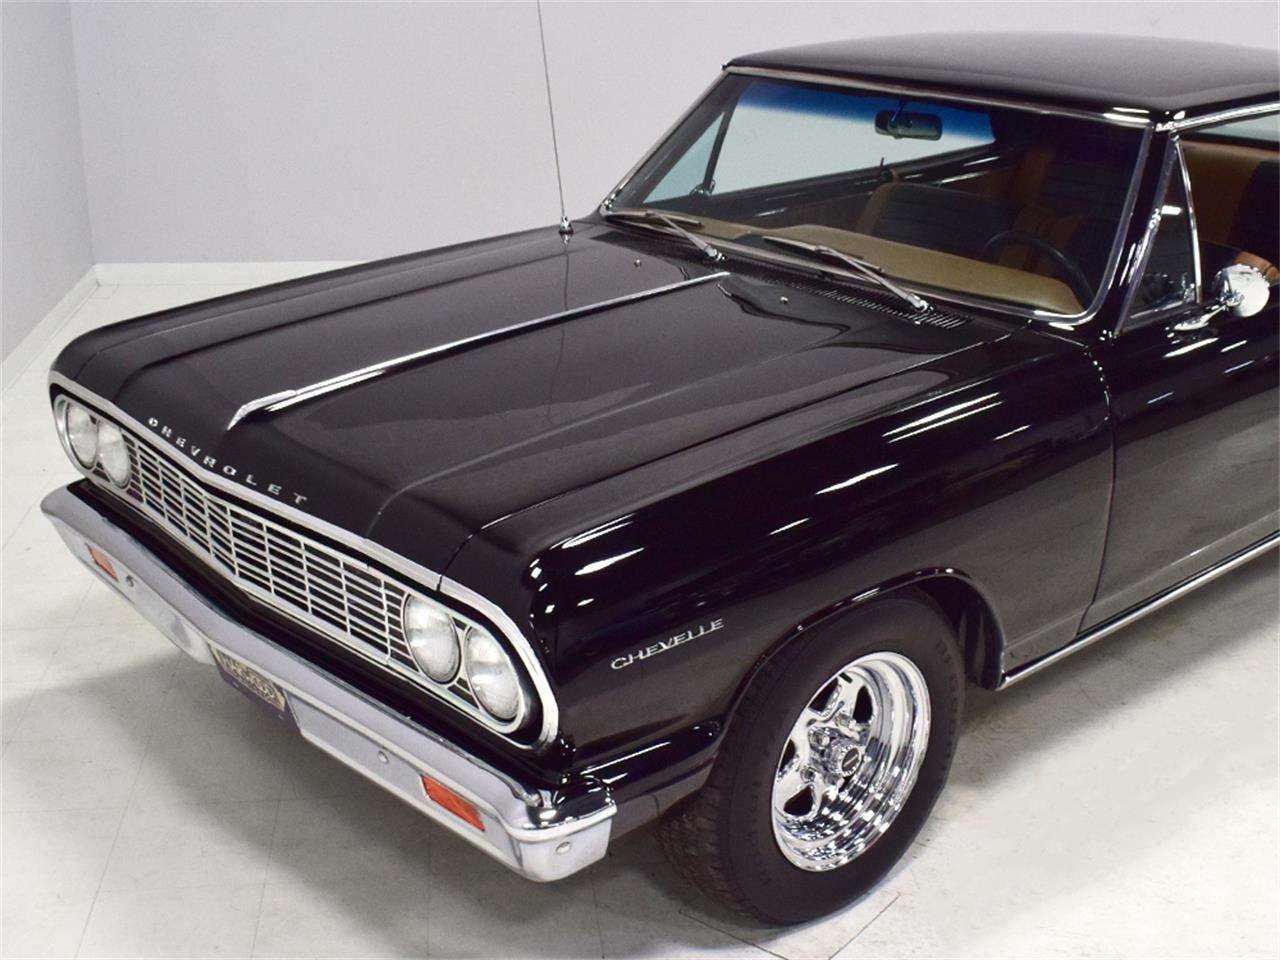 Large Picture of 1964 Malibu Offered by Harwood Motors, LTD. - PK4B